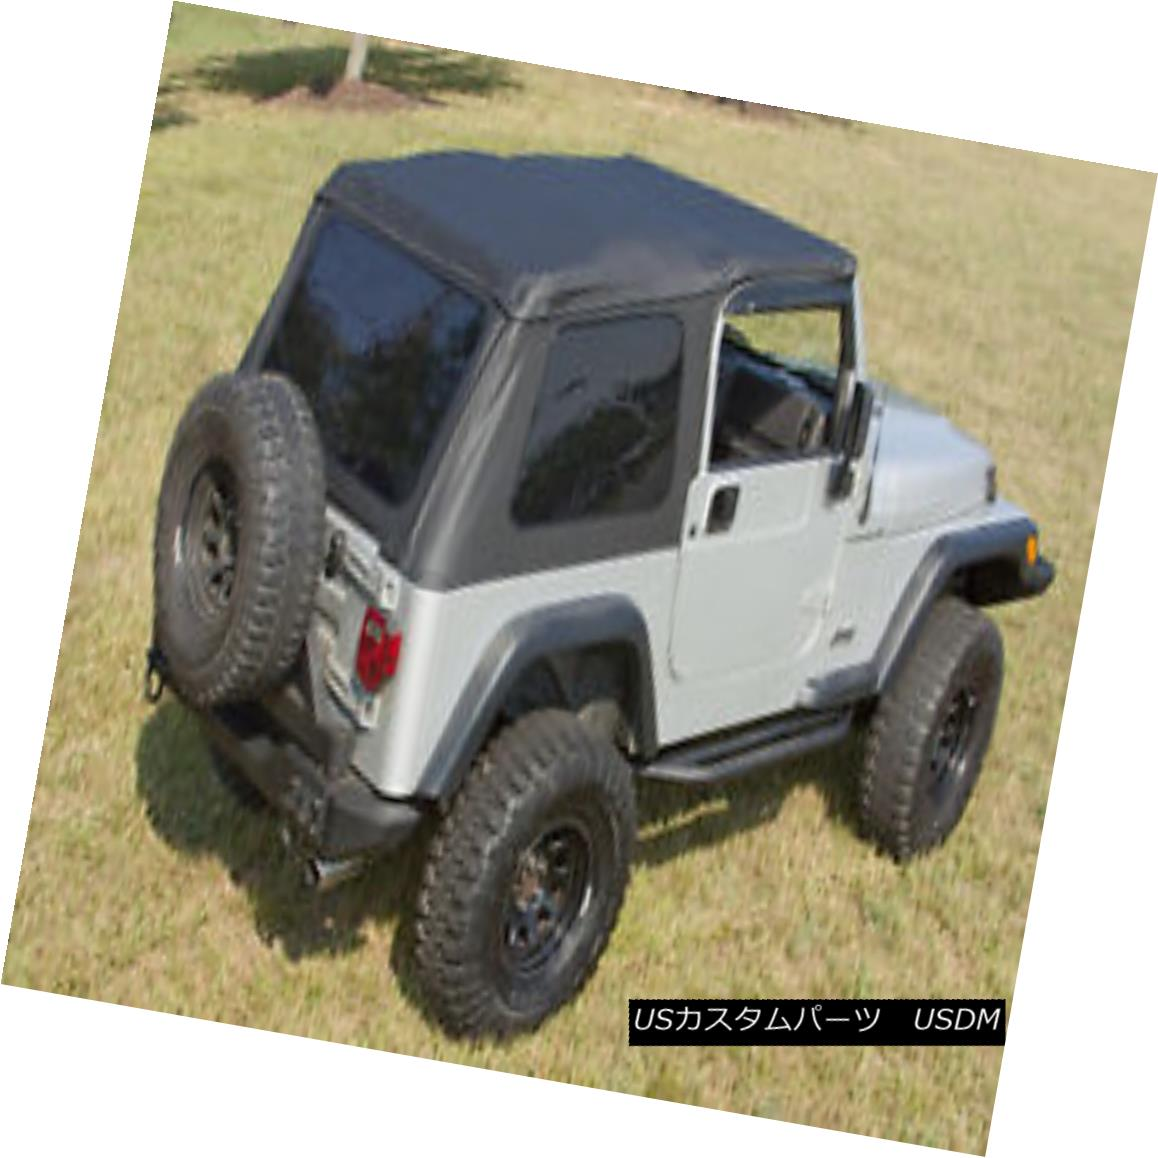 幌・ソフトトップ XHD Black Bowless Soft Top Fits: Jeep Wrangler TJ 1997-06 13750.35 Rugged Ridge XHDブラックボウレスソフトトップフィット:Jeep Wrangler TJ 1997-06 13750.35 Rugged Ridge